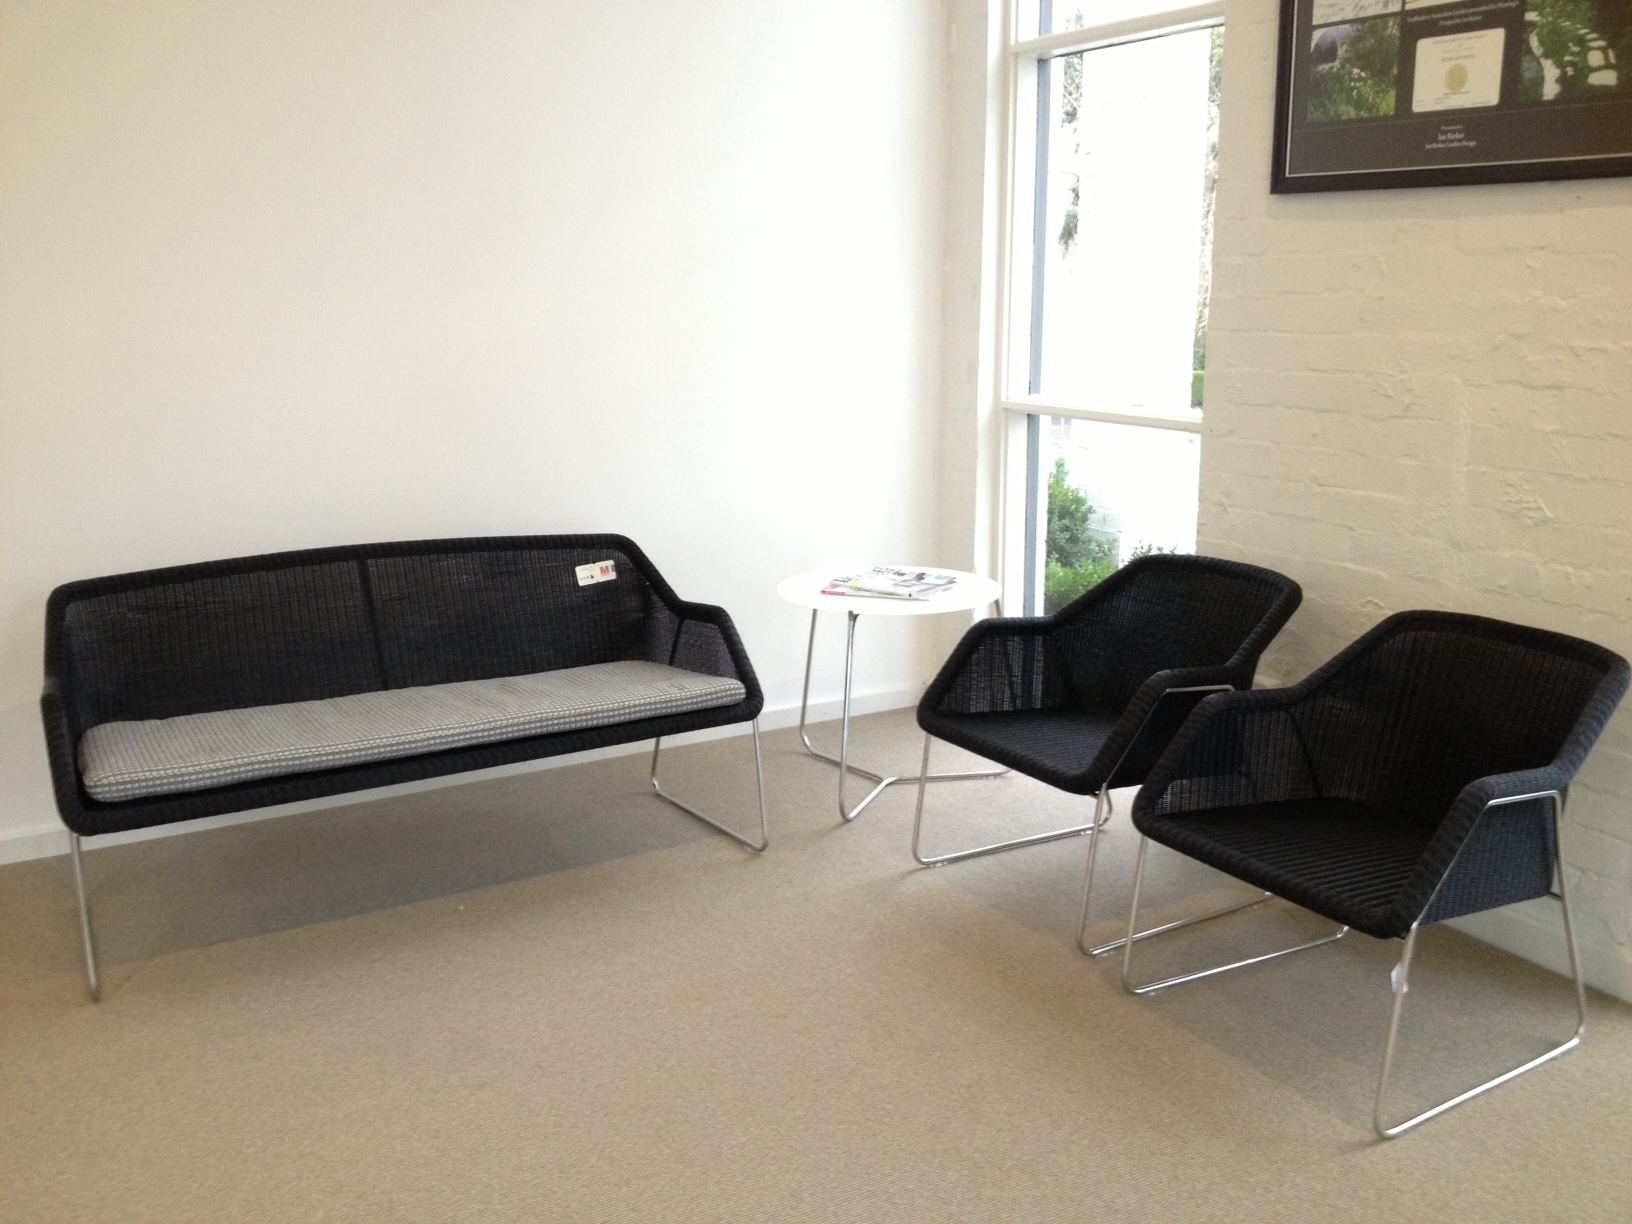 Mood 2 Seat Sofa Easy Chairs and Mood Round Coffee table from